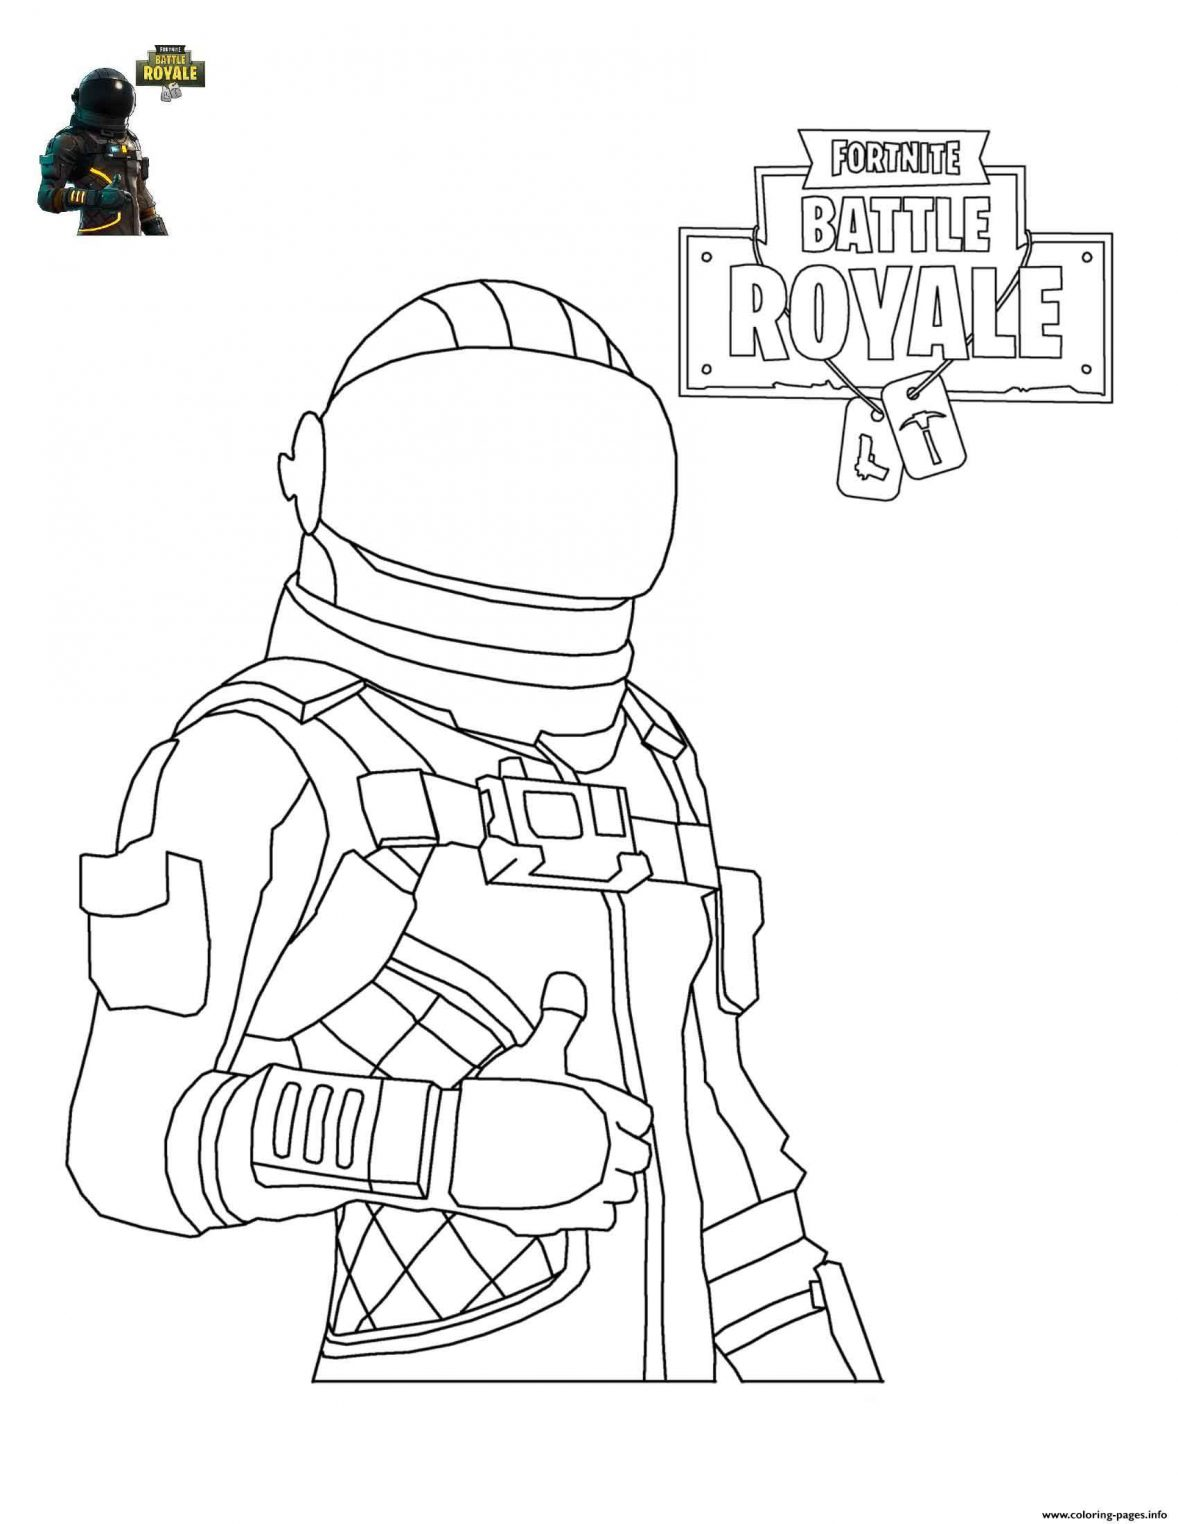 FORTNITE10 | Free coloring pages printable for kids and adults